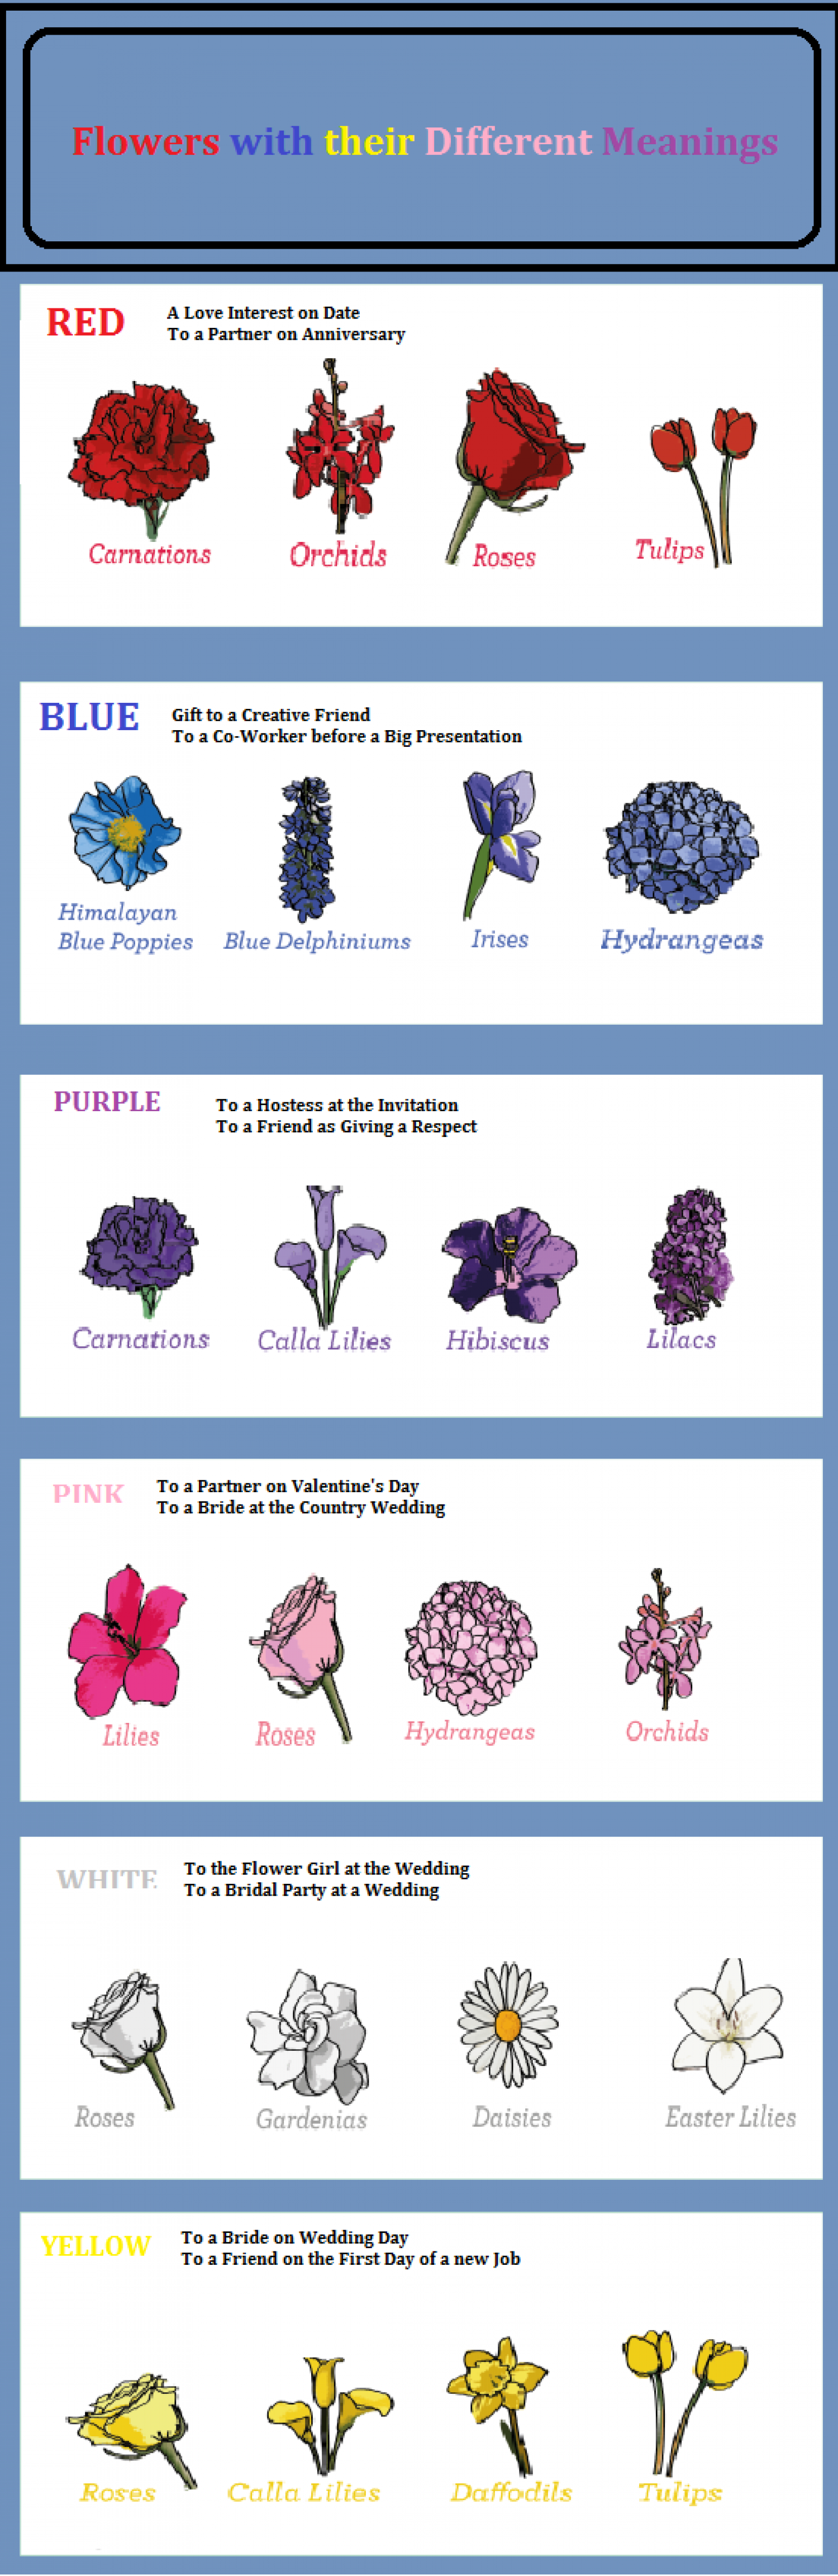 Flowers with their Meaning